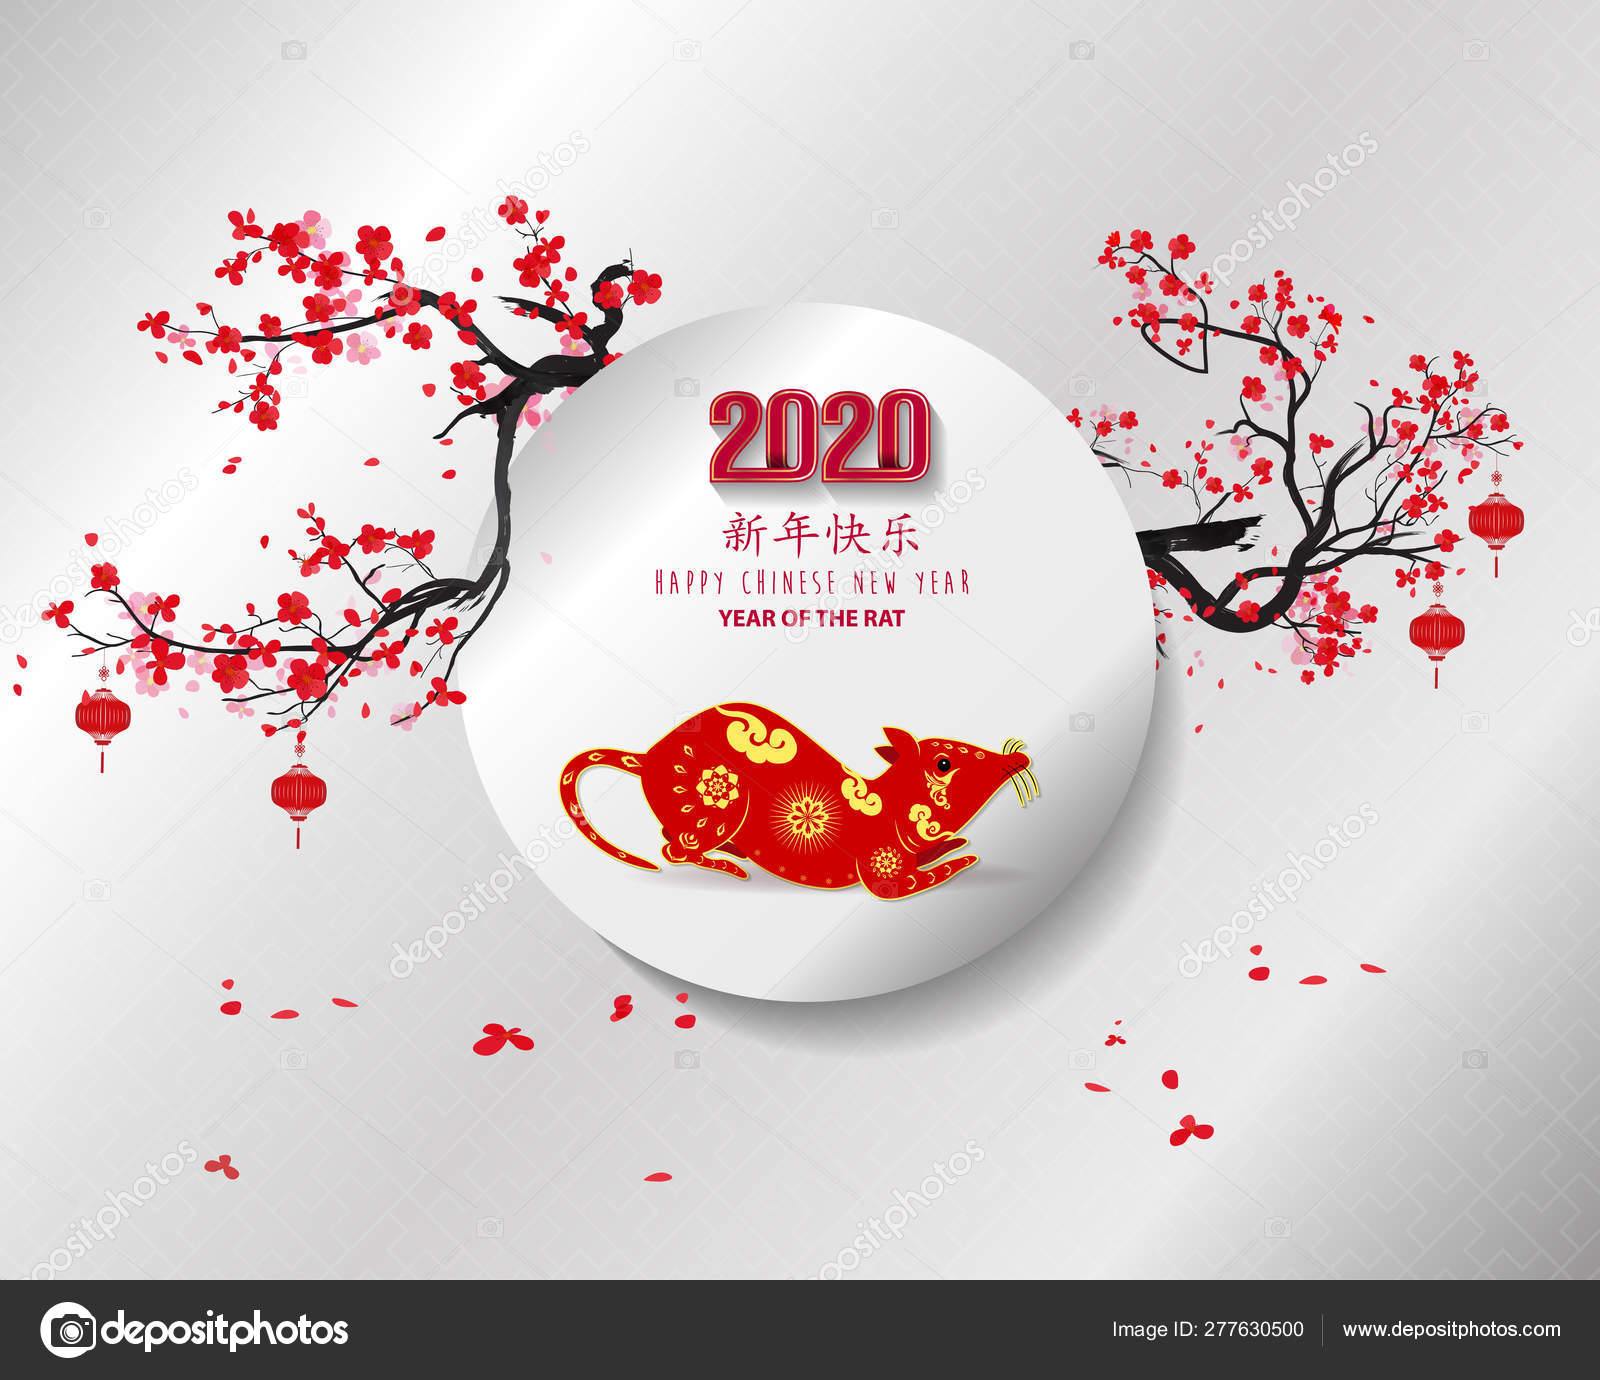 Happy New Year 2020 Merry Christmas Happy Chinese New Year Stock Vector C Kimminthien 277630500